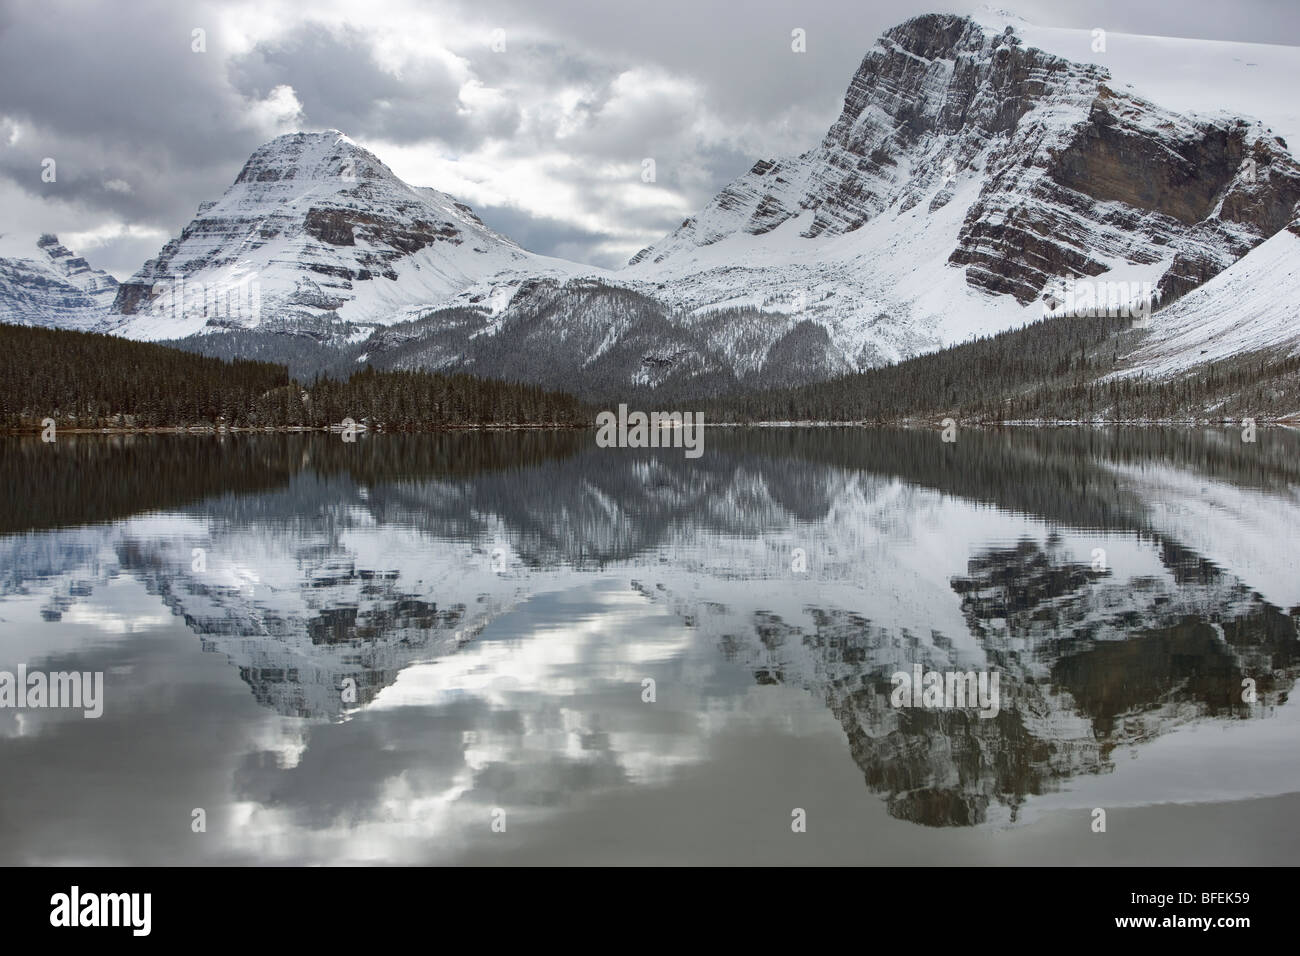 Bow Lake, Bogen Spitze am Bow Summit, Banff Nationalpark, Alberta, Kanada Stockbild